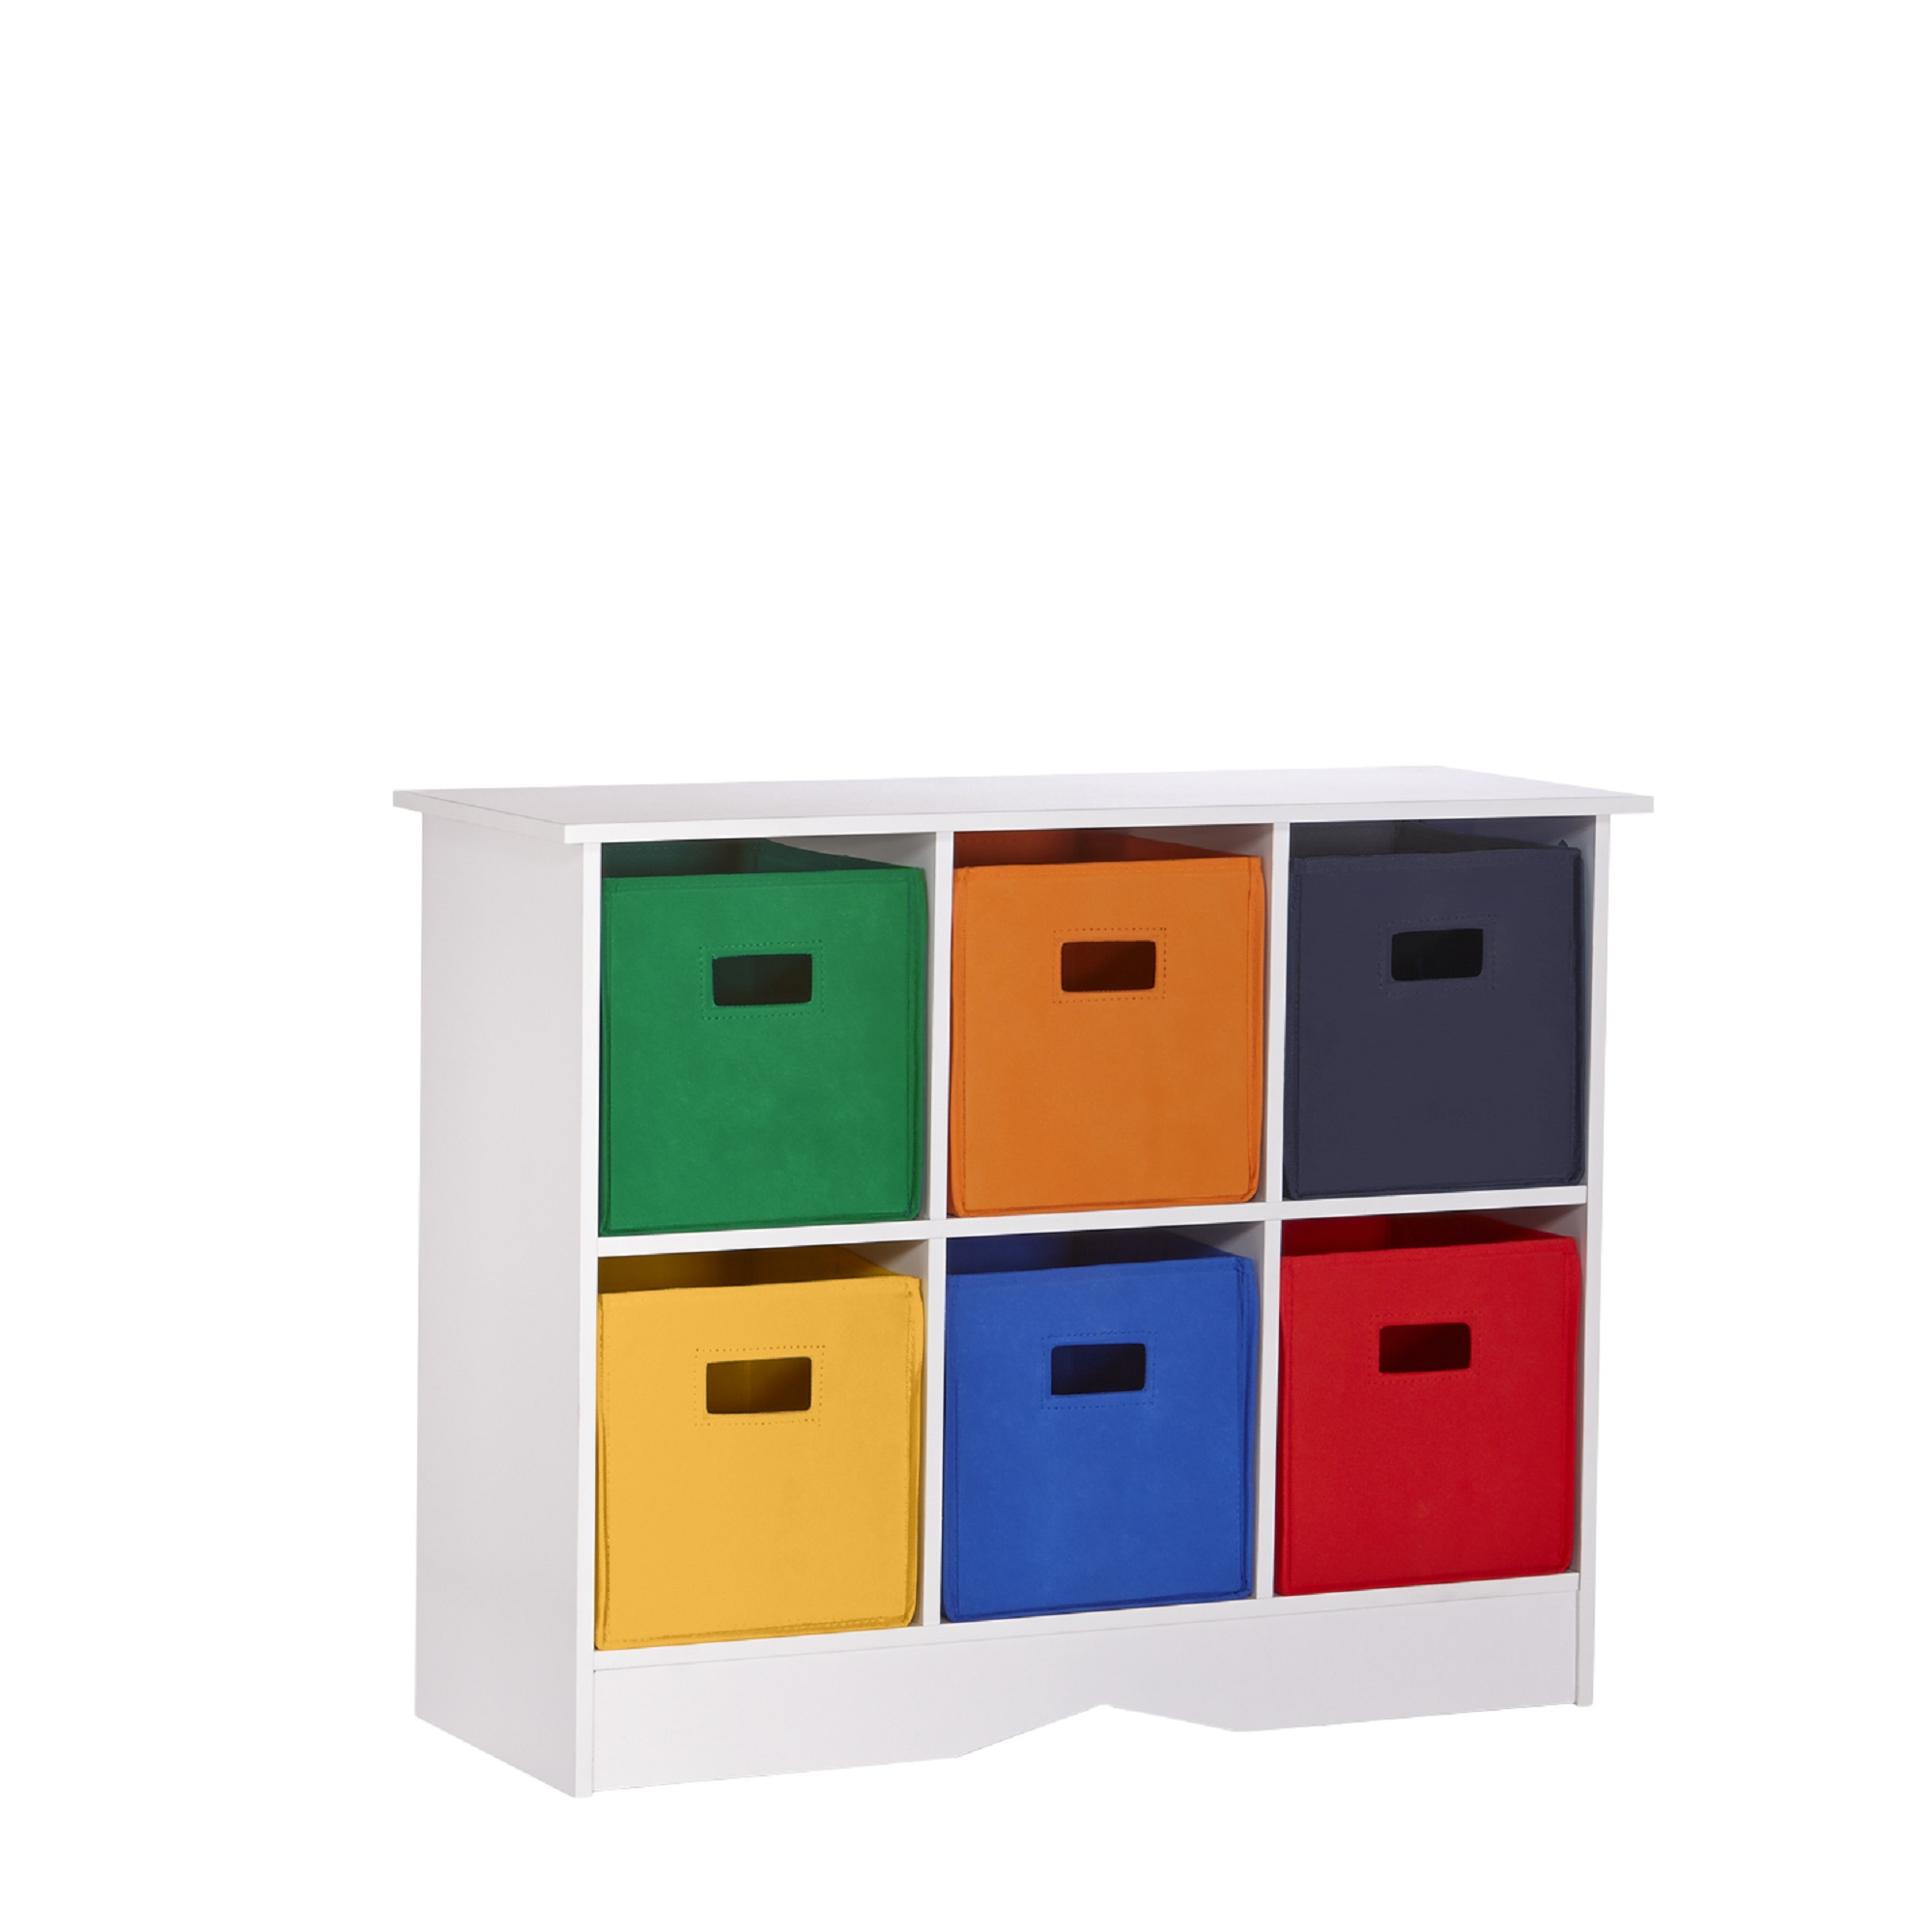 RiverRidge Kids 6 Bin Storage Cabinet   White/Primary   Walmart.com